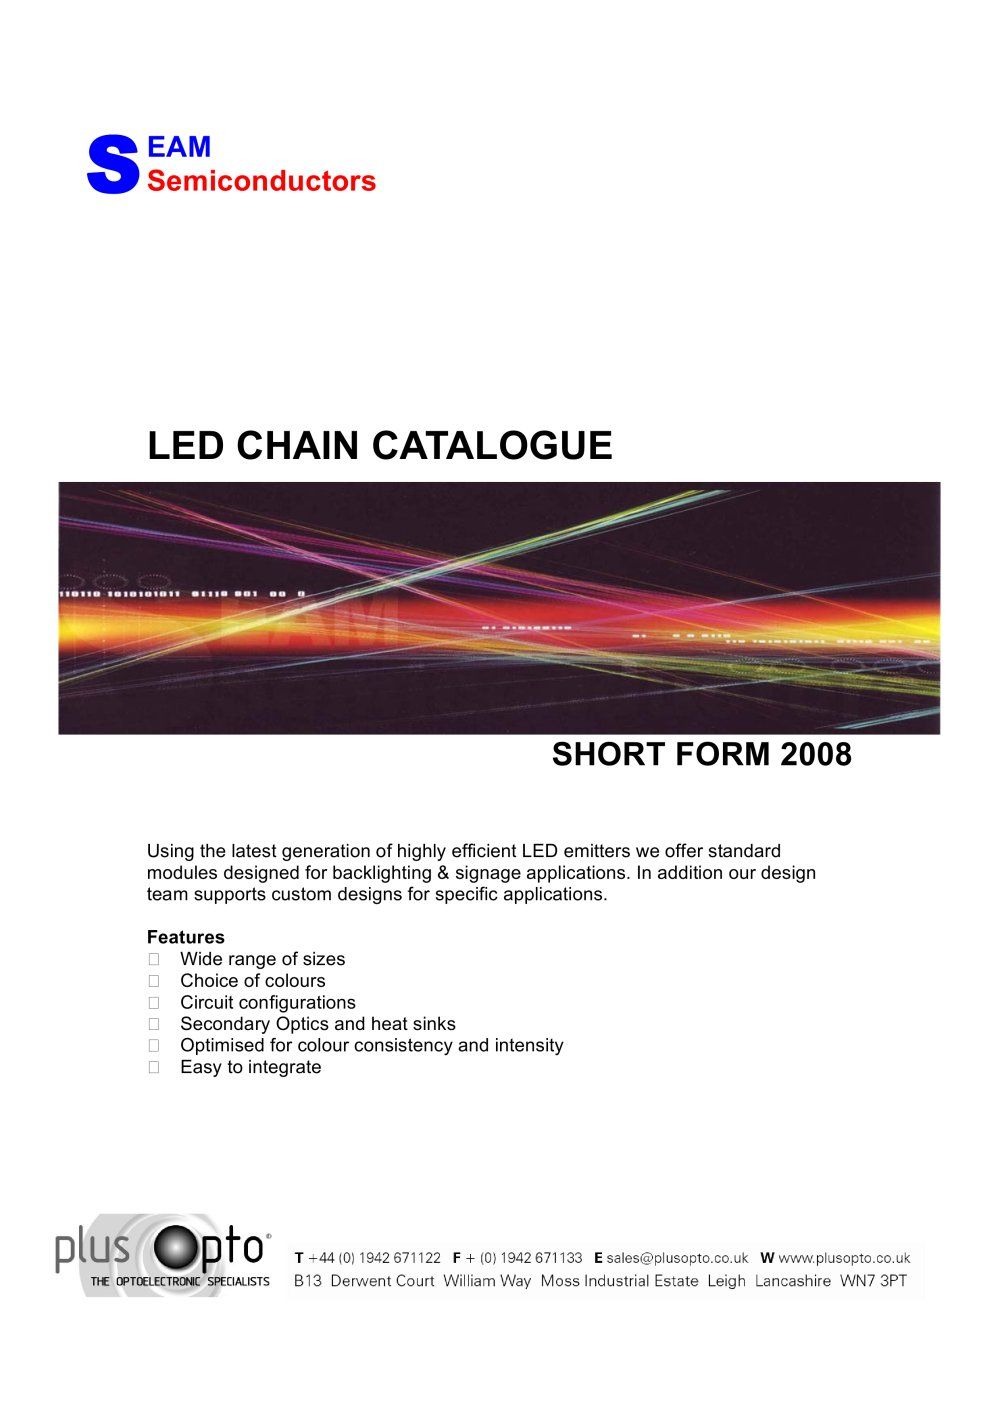 Led Chain Catalogue Plus Opto Pdf Technical How To Make A Circuit Version 1 9 Pages